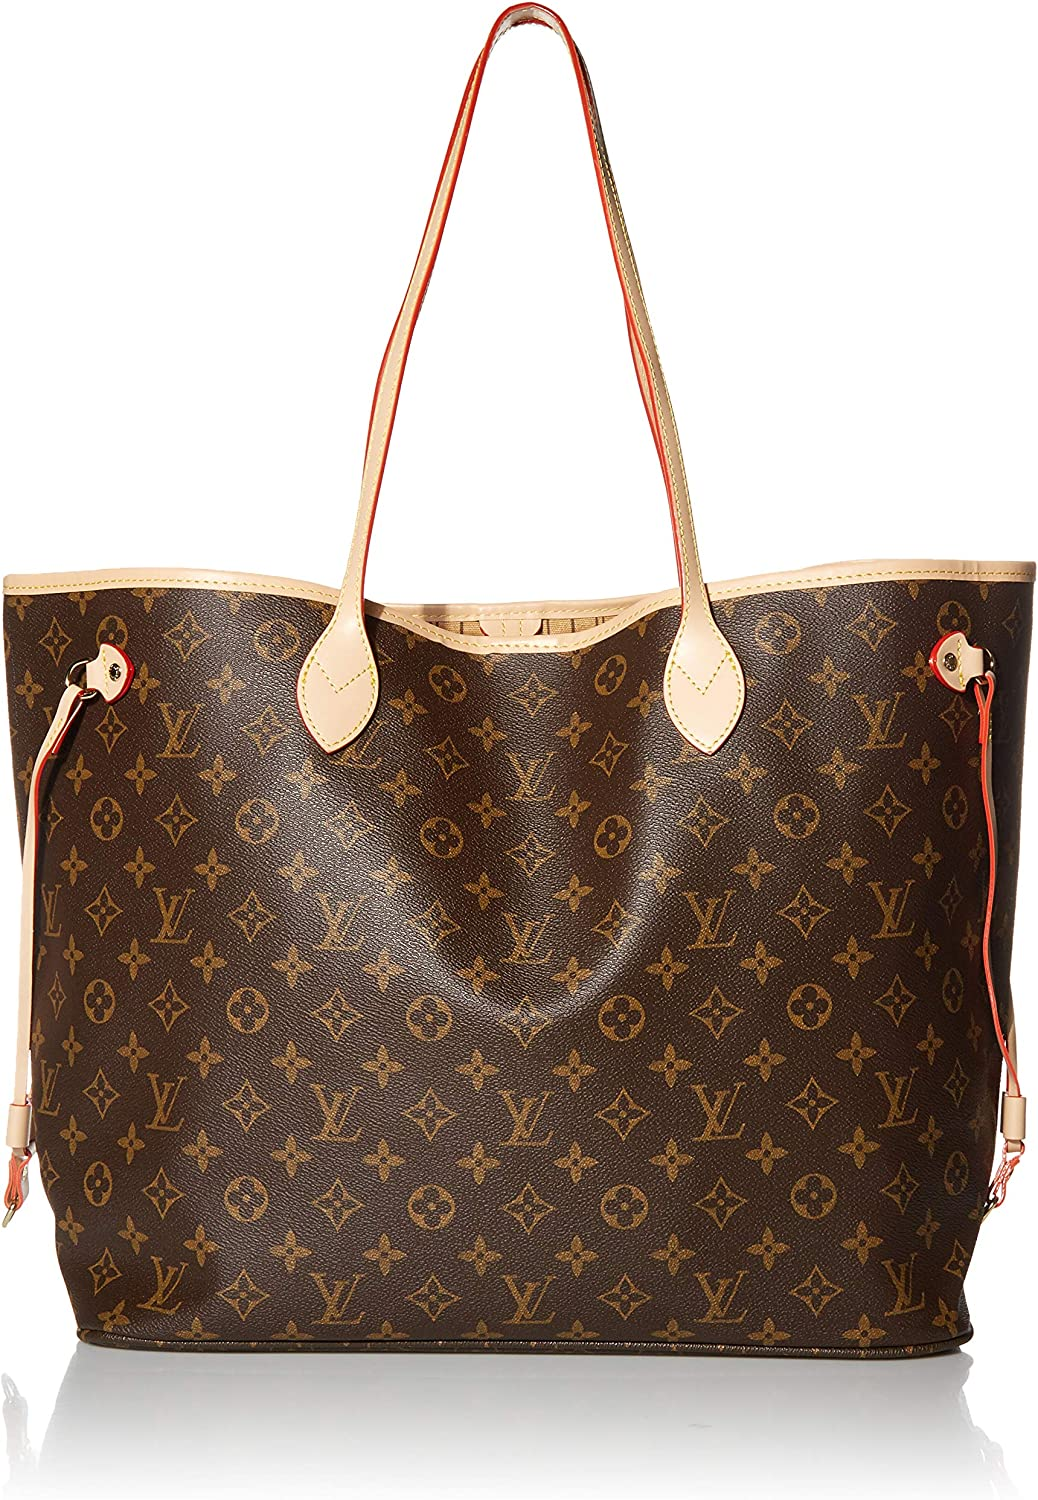 Louis Vuitton Neverfull MM Monogram Bags Handbags Purse